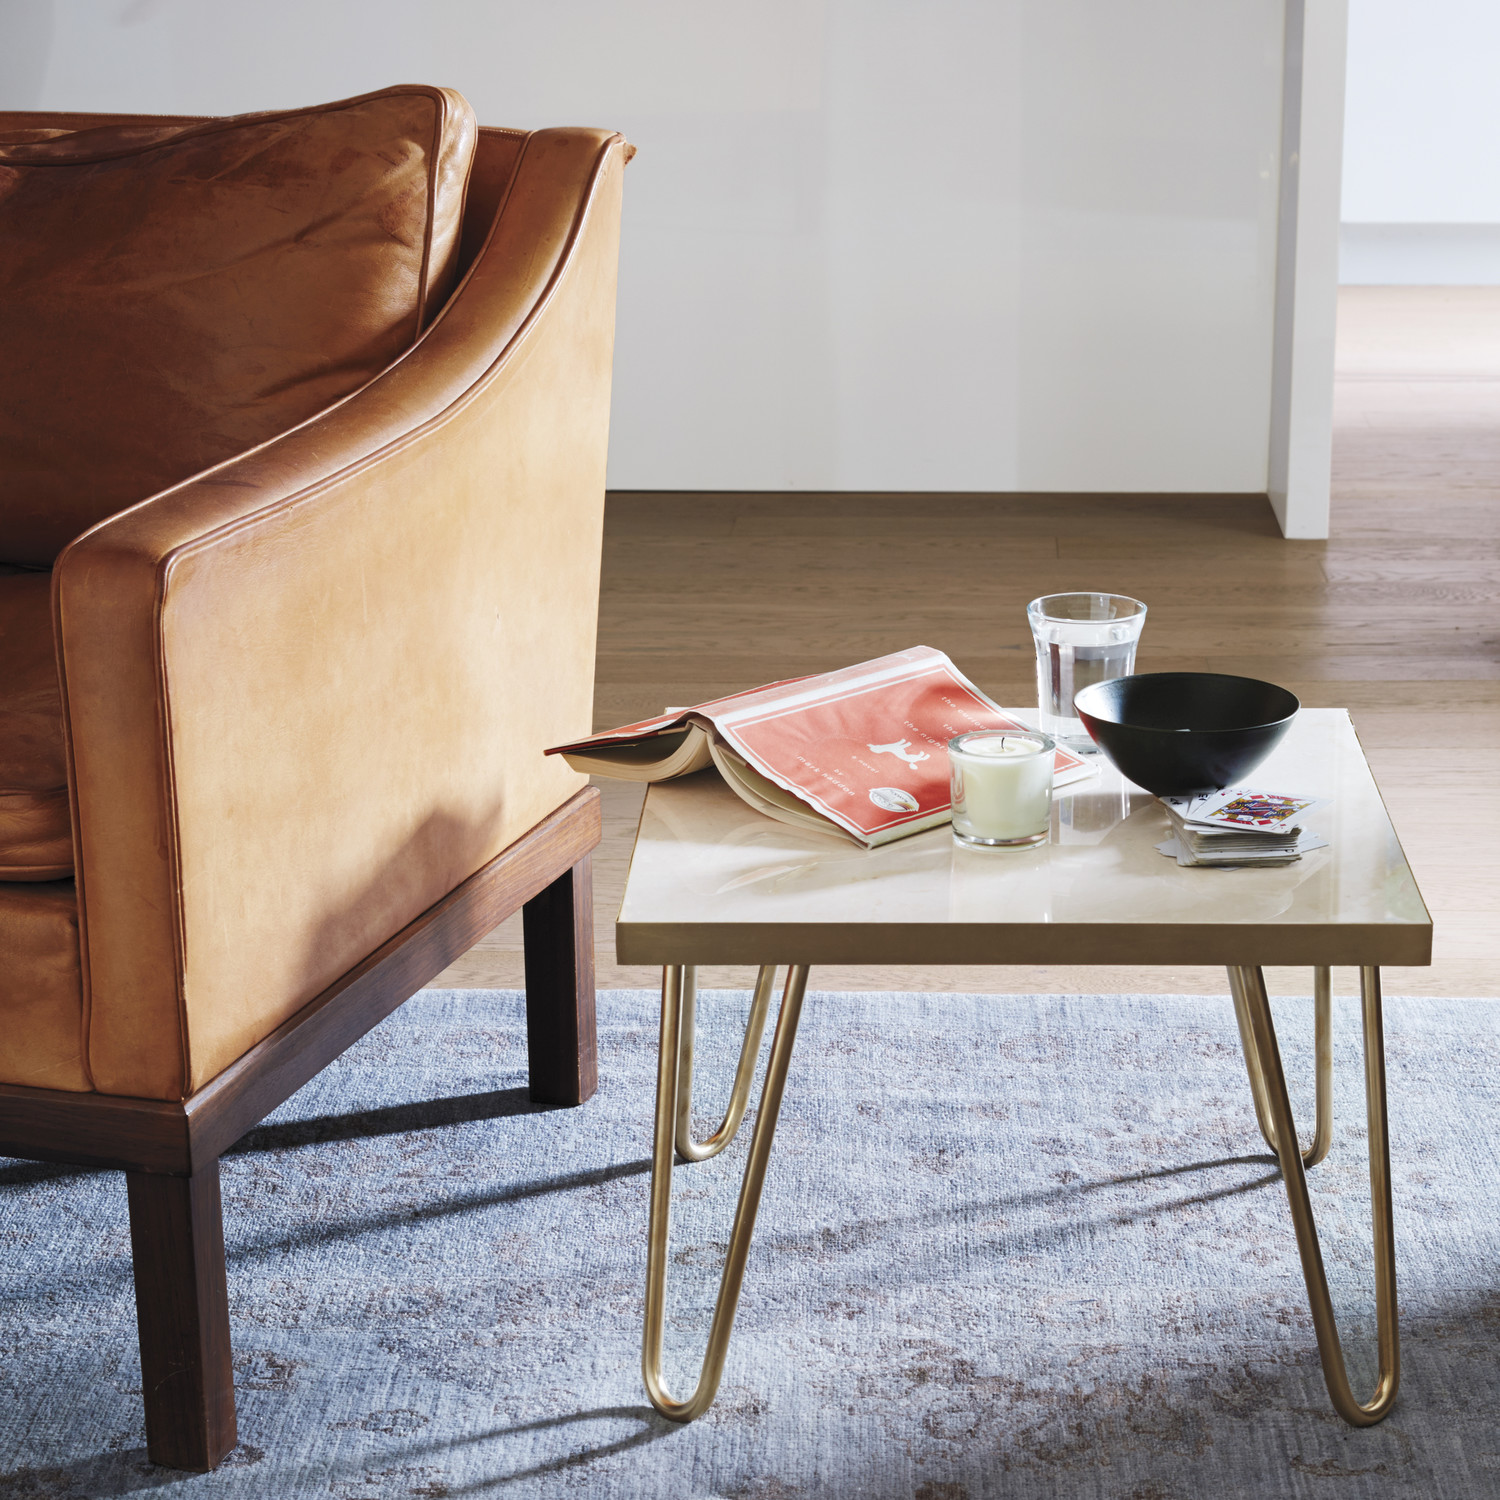 Diy Marble Coffee Table Top: Brass-Leg Side Table